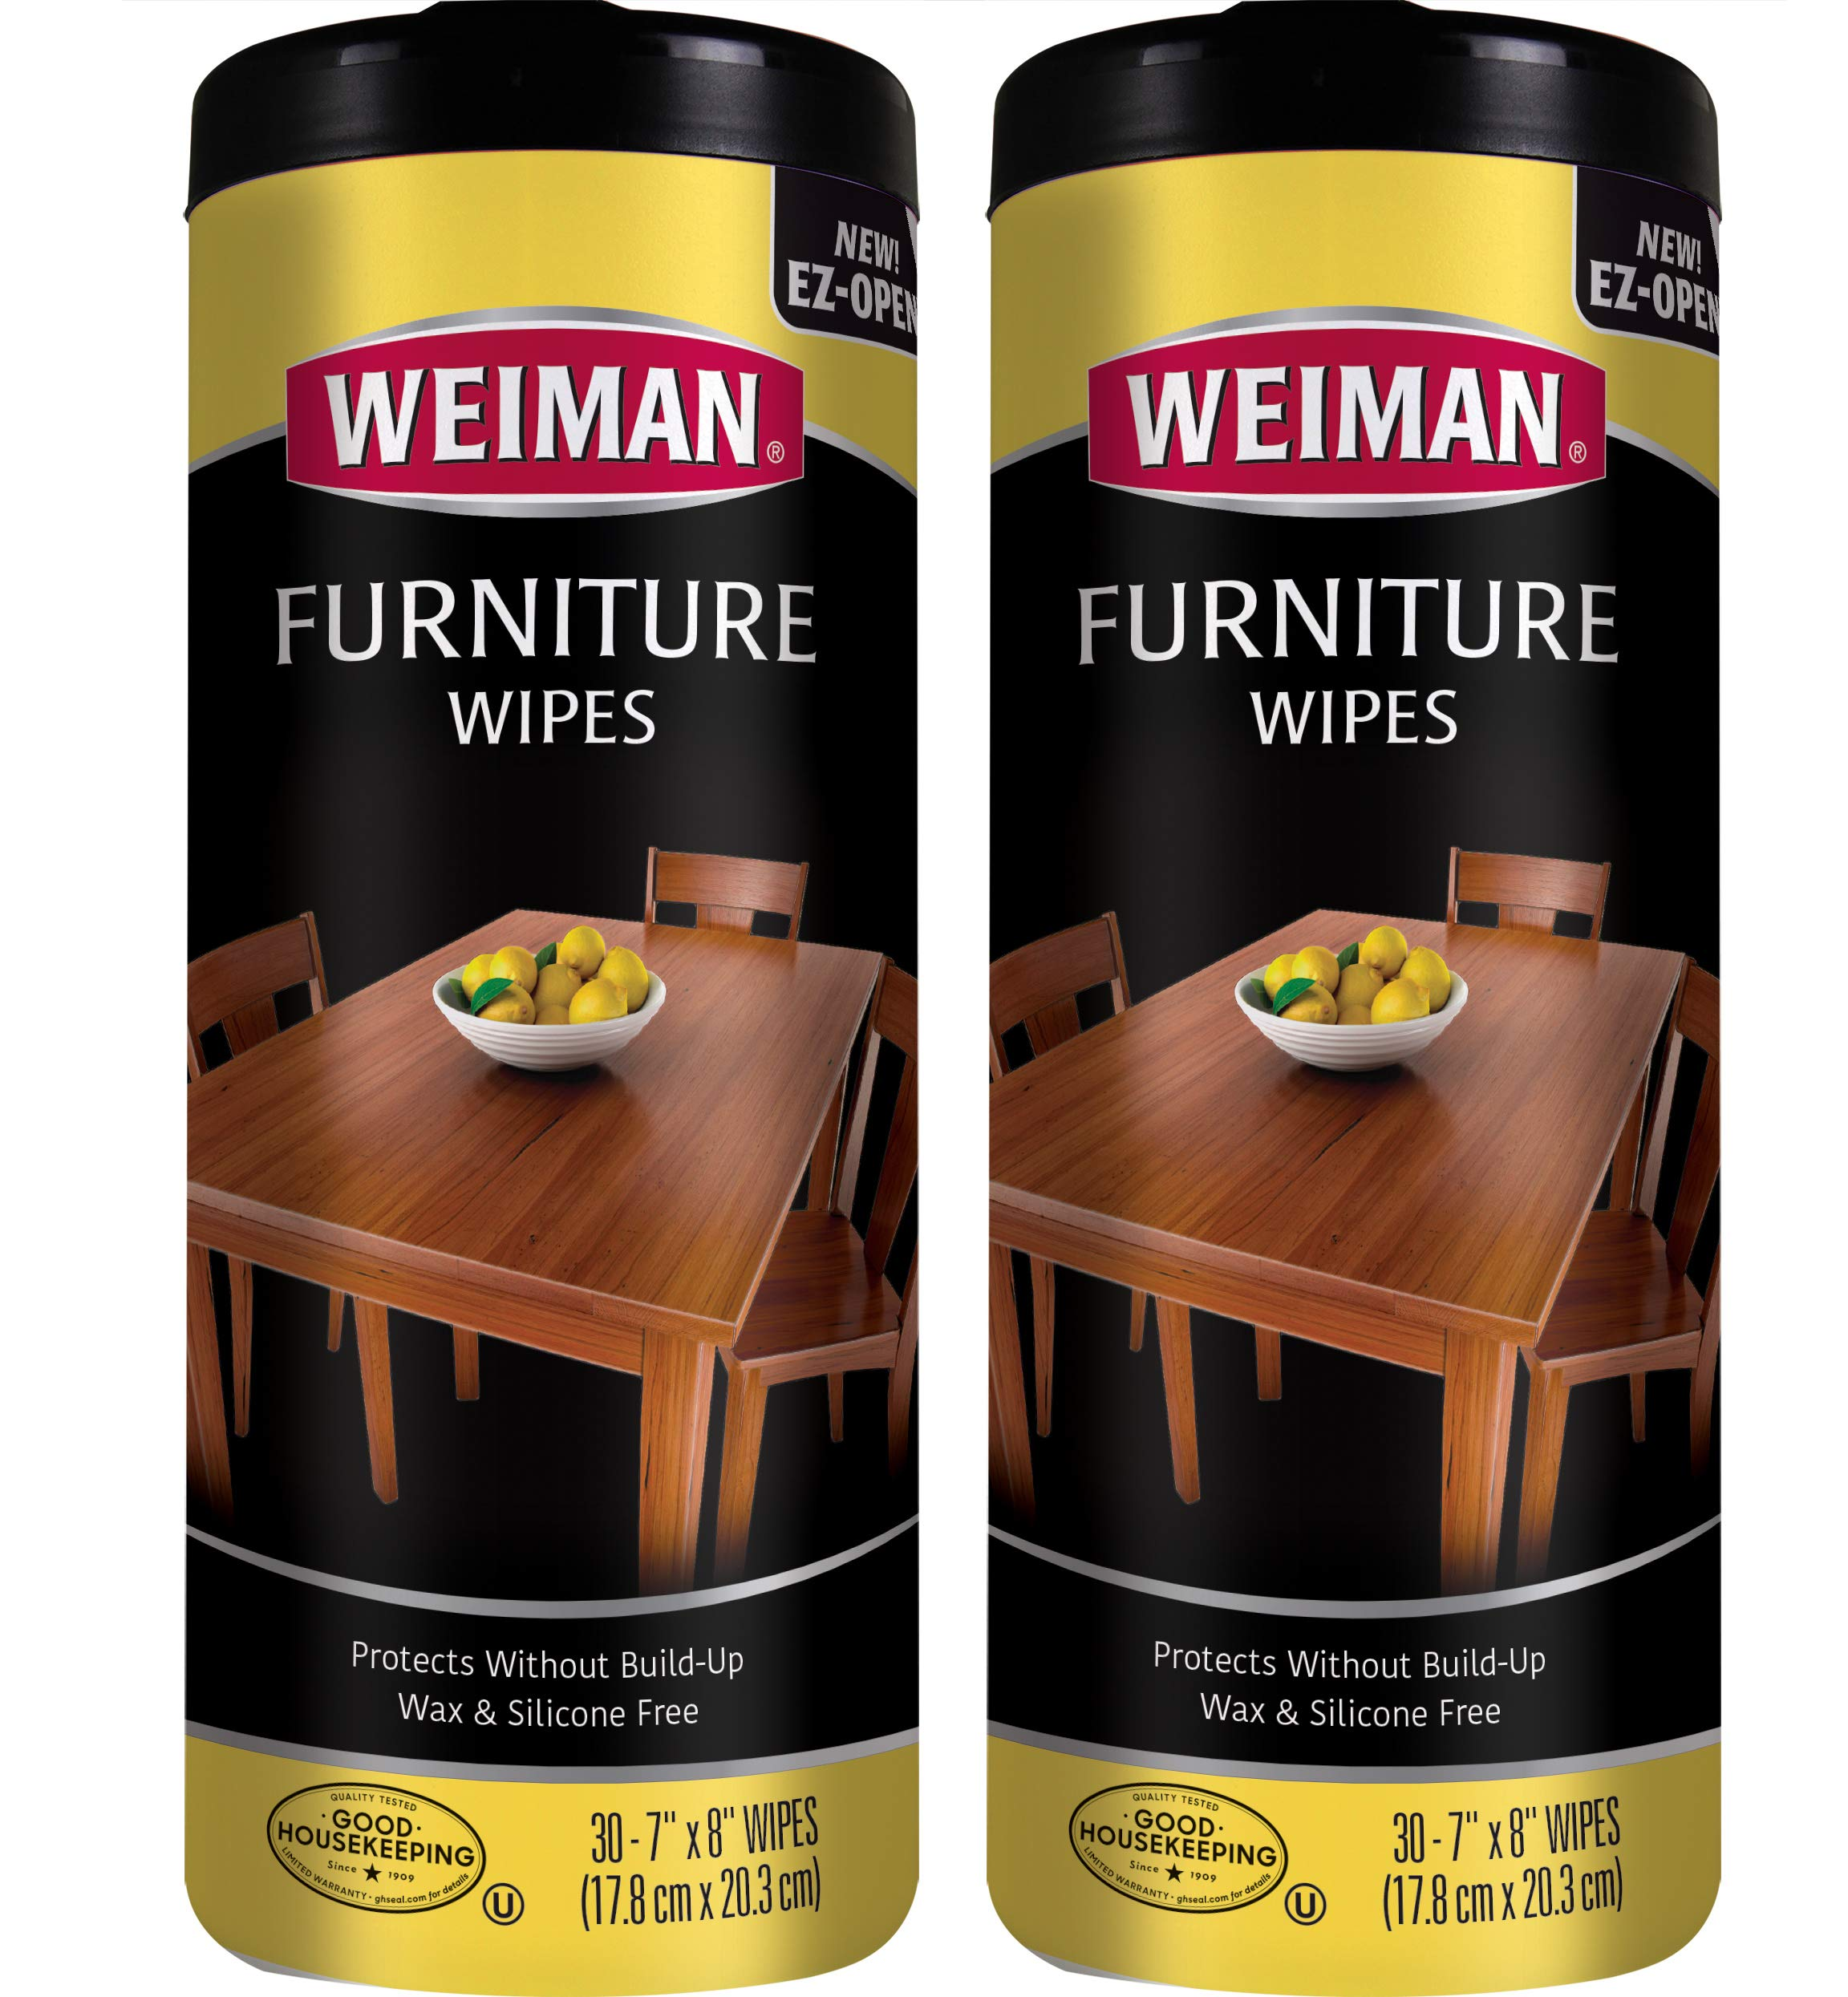 Weiman Wood Cleaner and Polish Wipes - 2 Pack - Non-Toxic for Furniture to Beautify and Protect, No Build-Up, Contains Ultra Violet Protection, Pleasant Scent, Surface Safe - 30 Count by Weiman